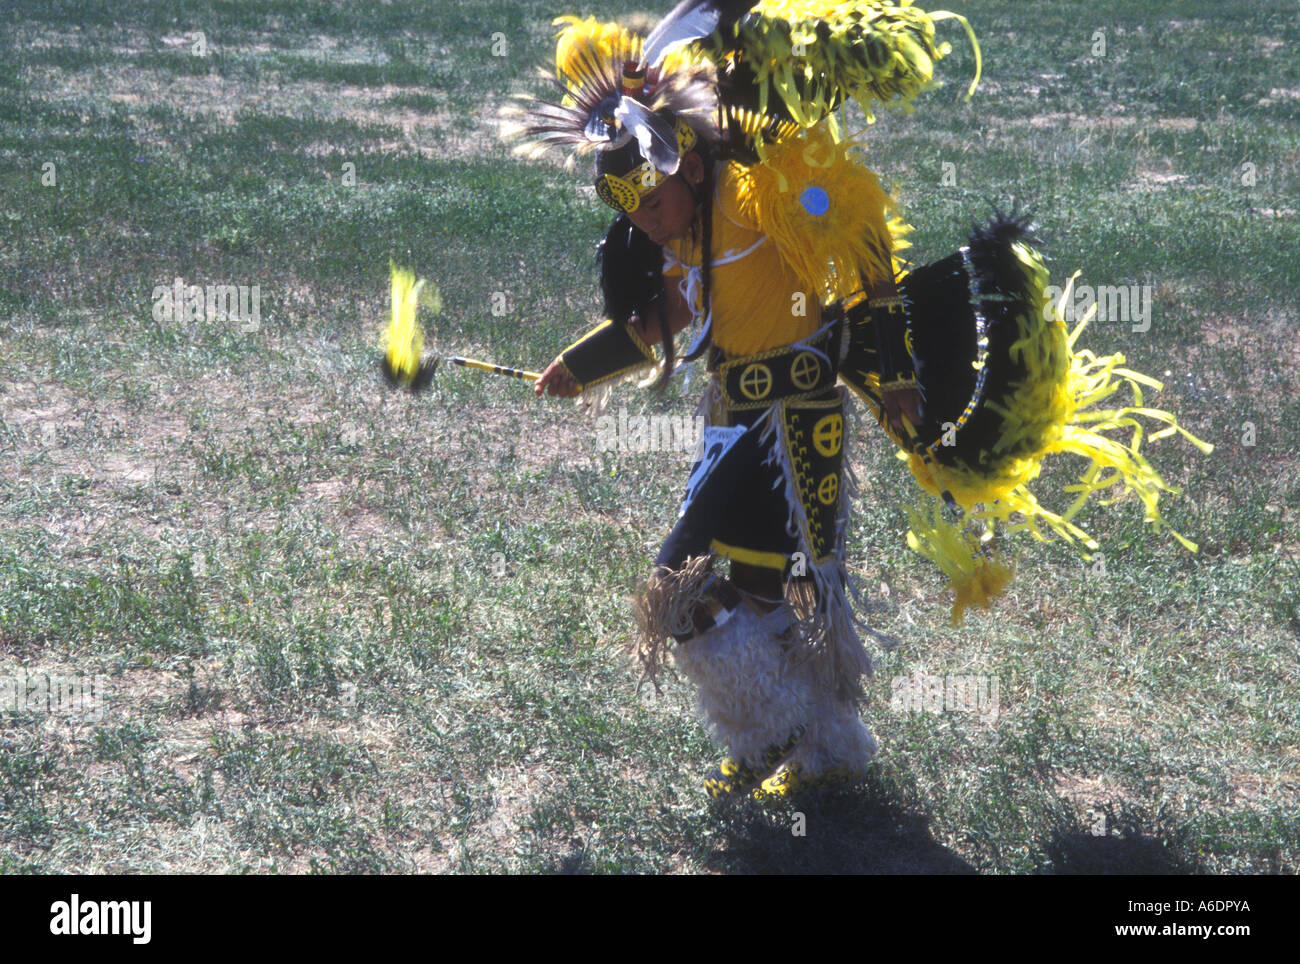 A young Sioux indian dances at a powwow at the Pine Ridge Indian Reservation - Stock Image